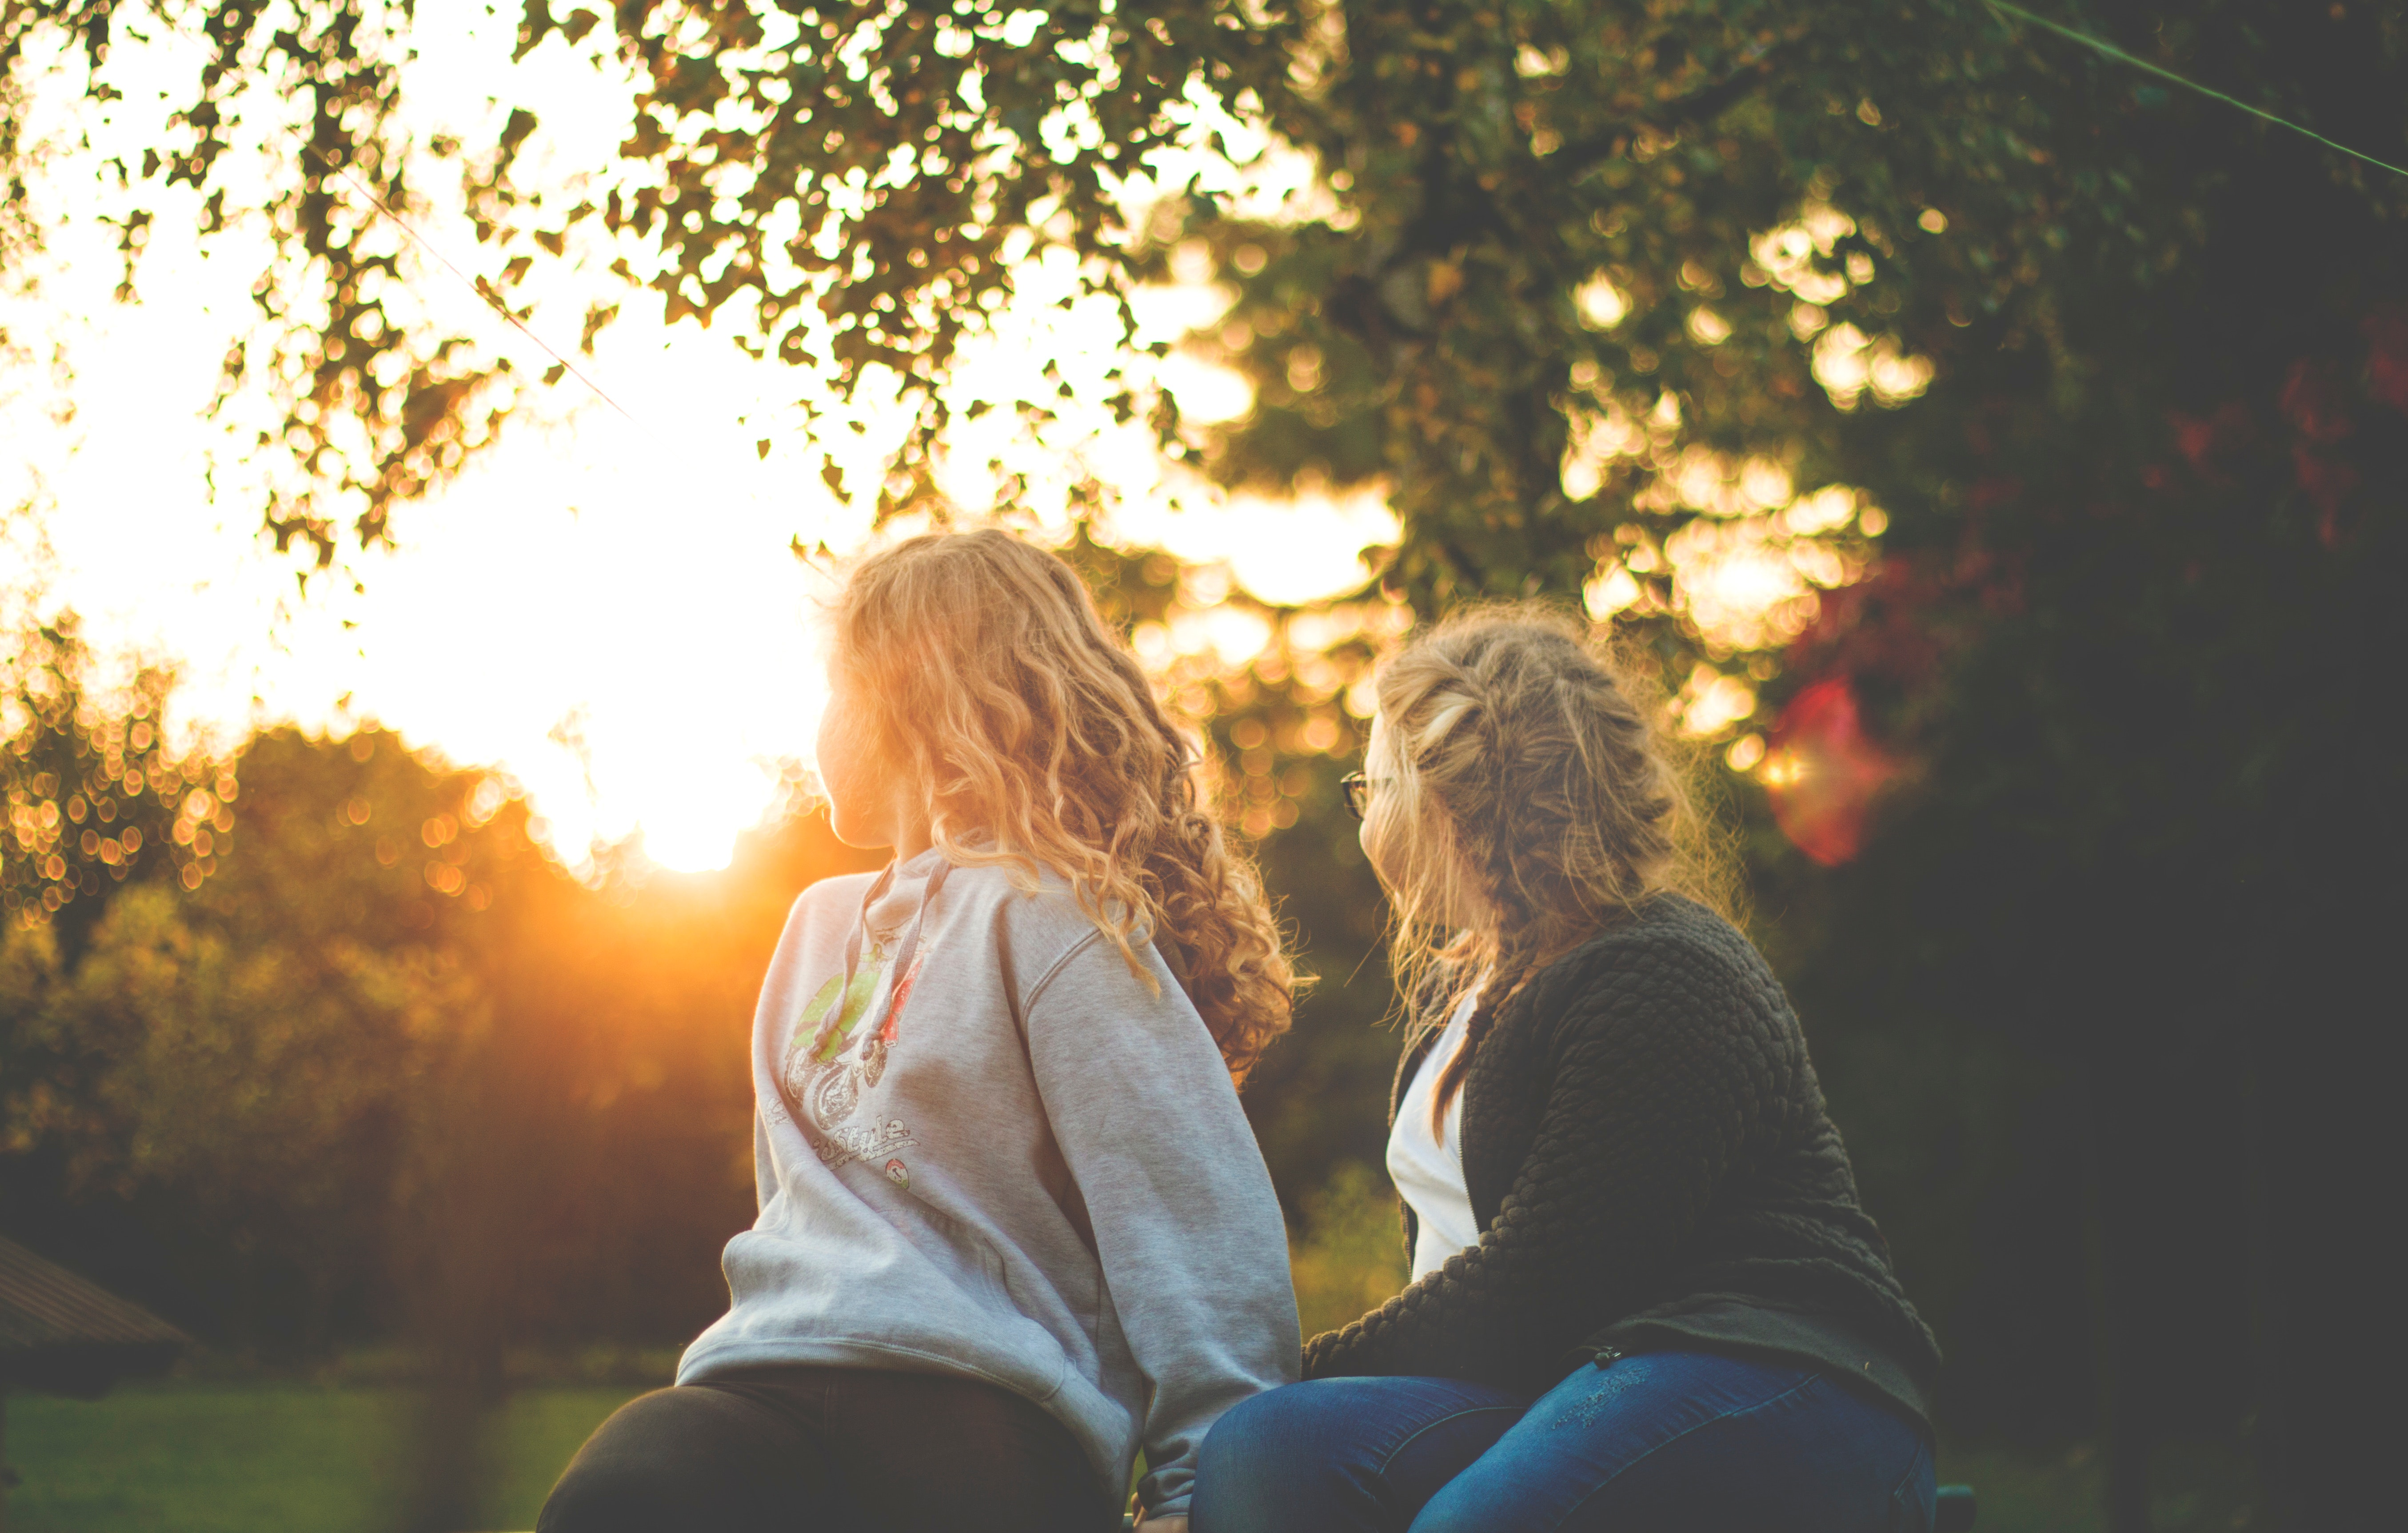 Two Women Sitting Near Green Tree during Sunset, Backlit, Light, Wear, Trees, HQ Photo